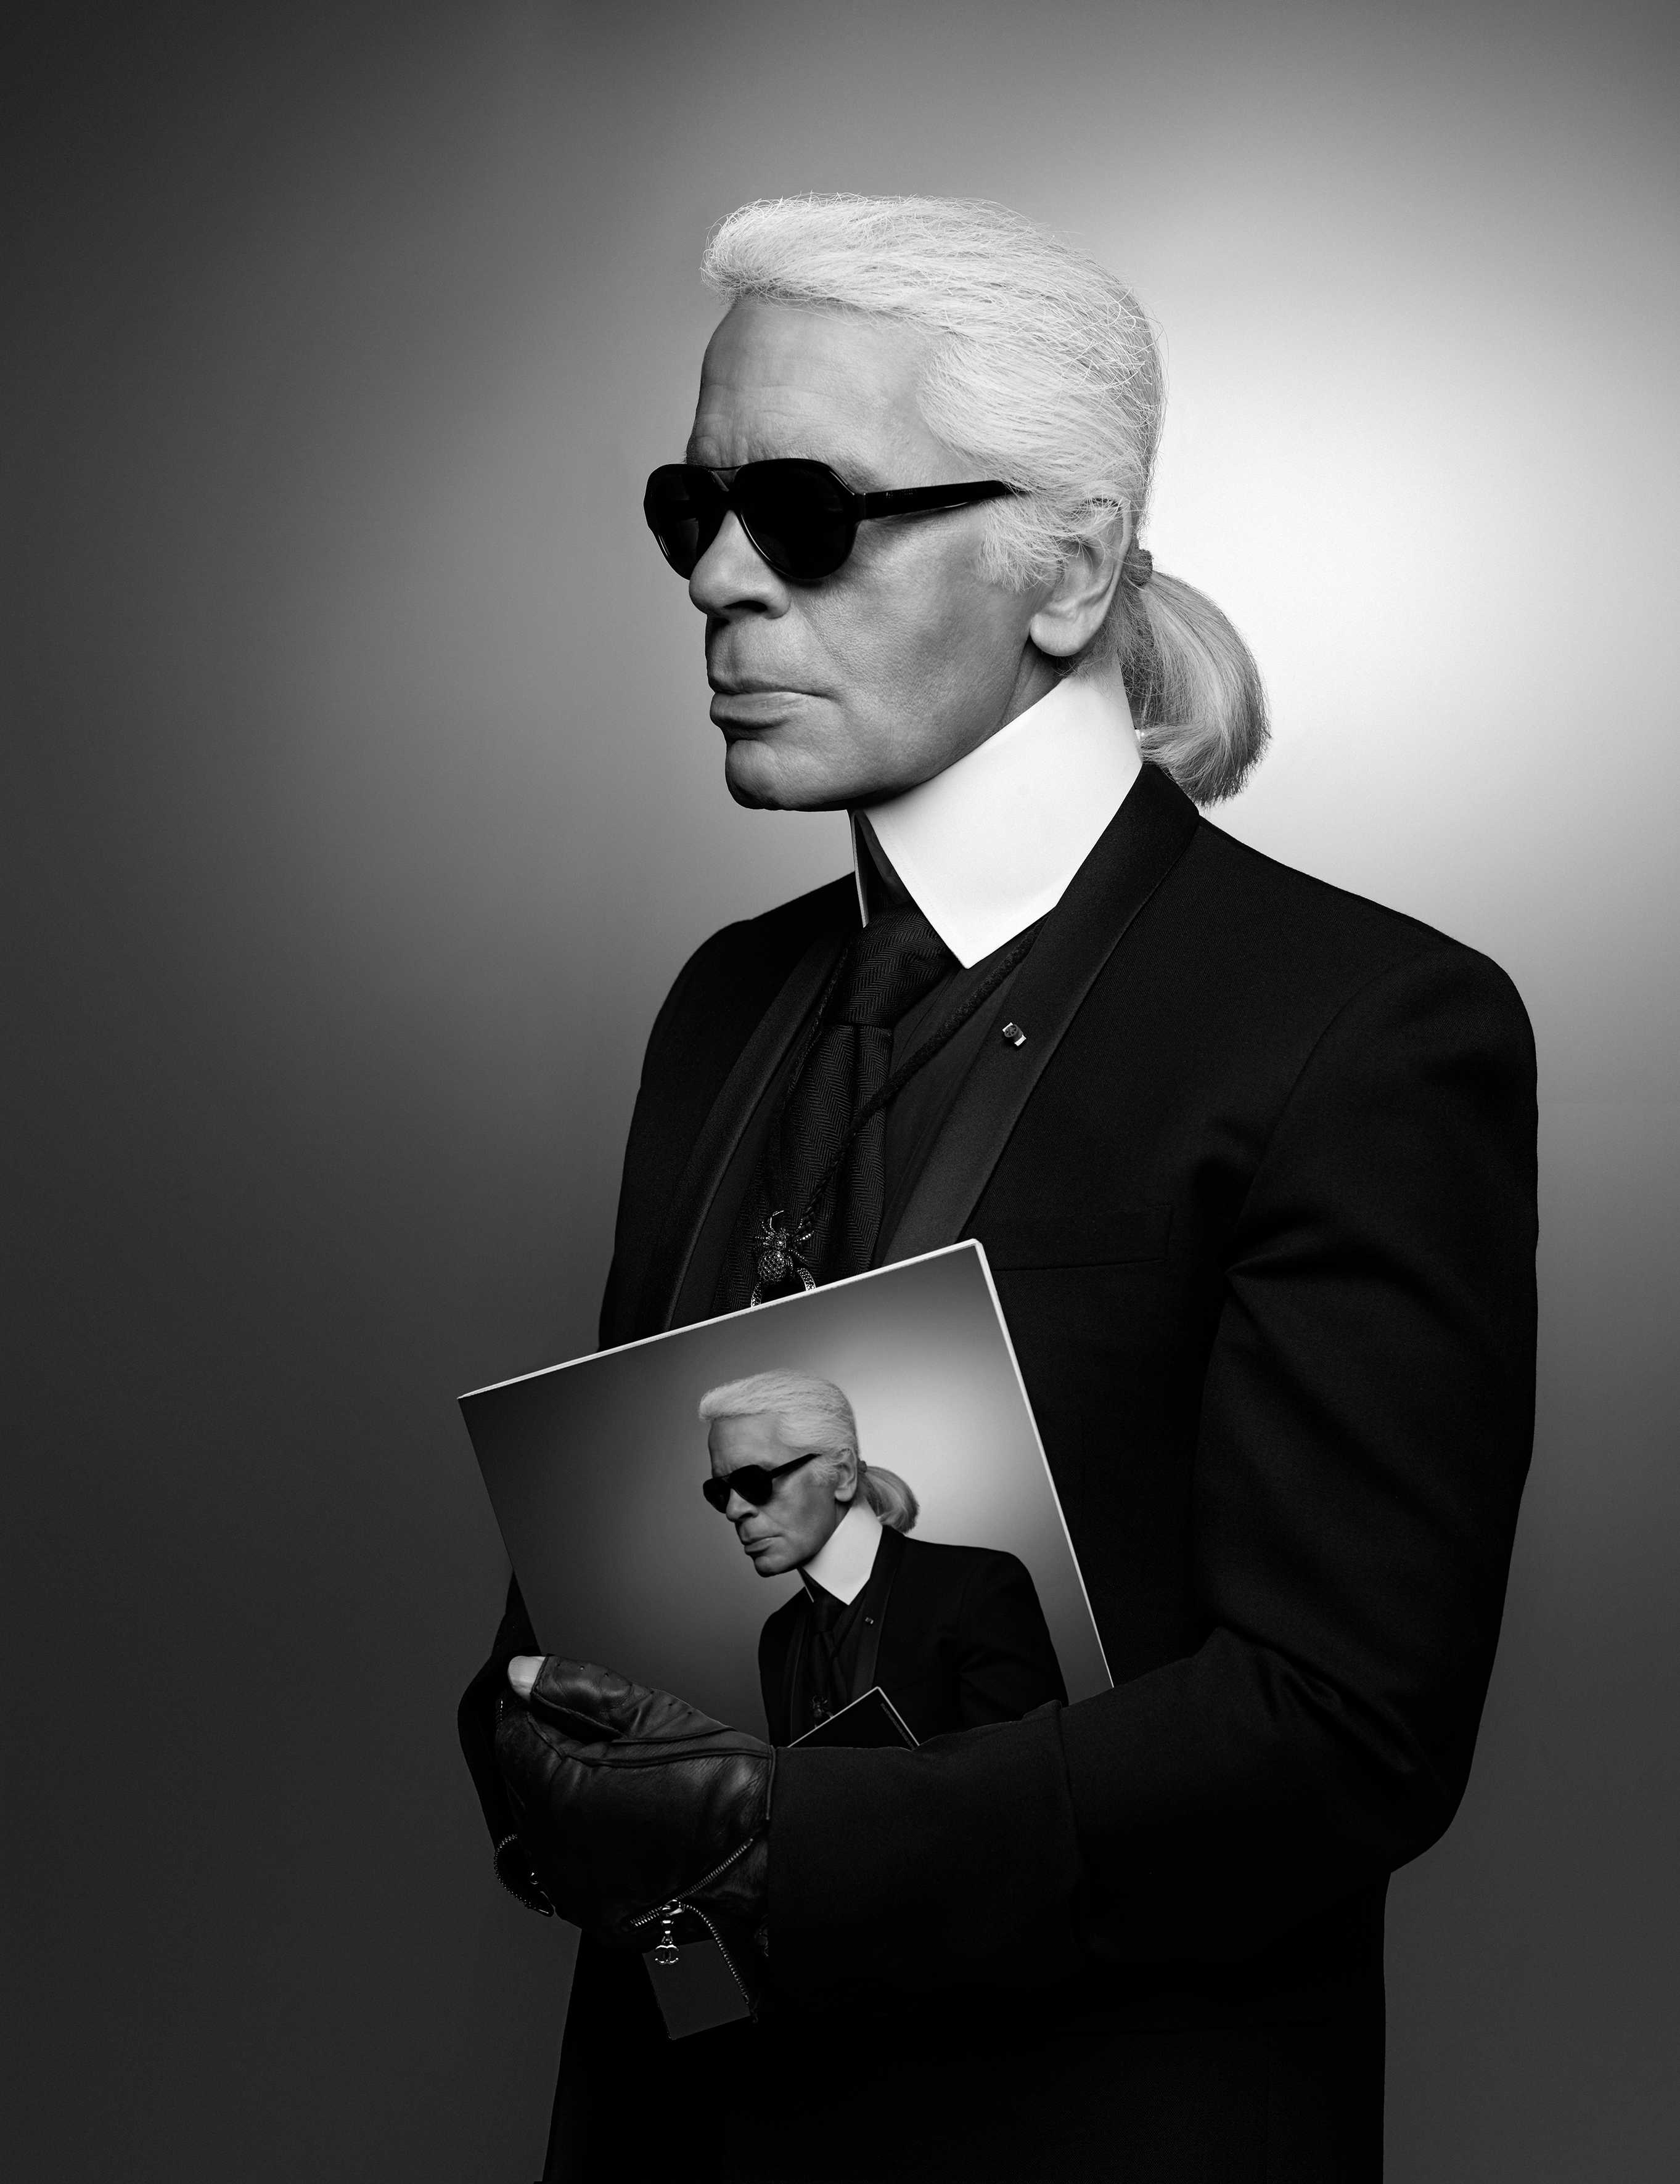 Karl Lagerfeld in mostra a Palazzo Pitti: le foto